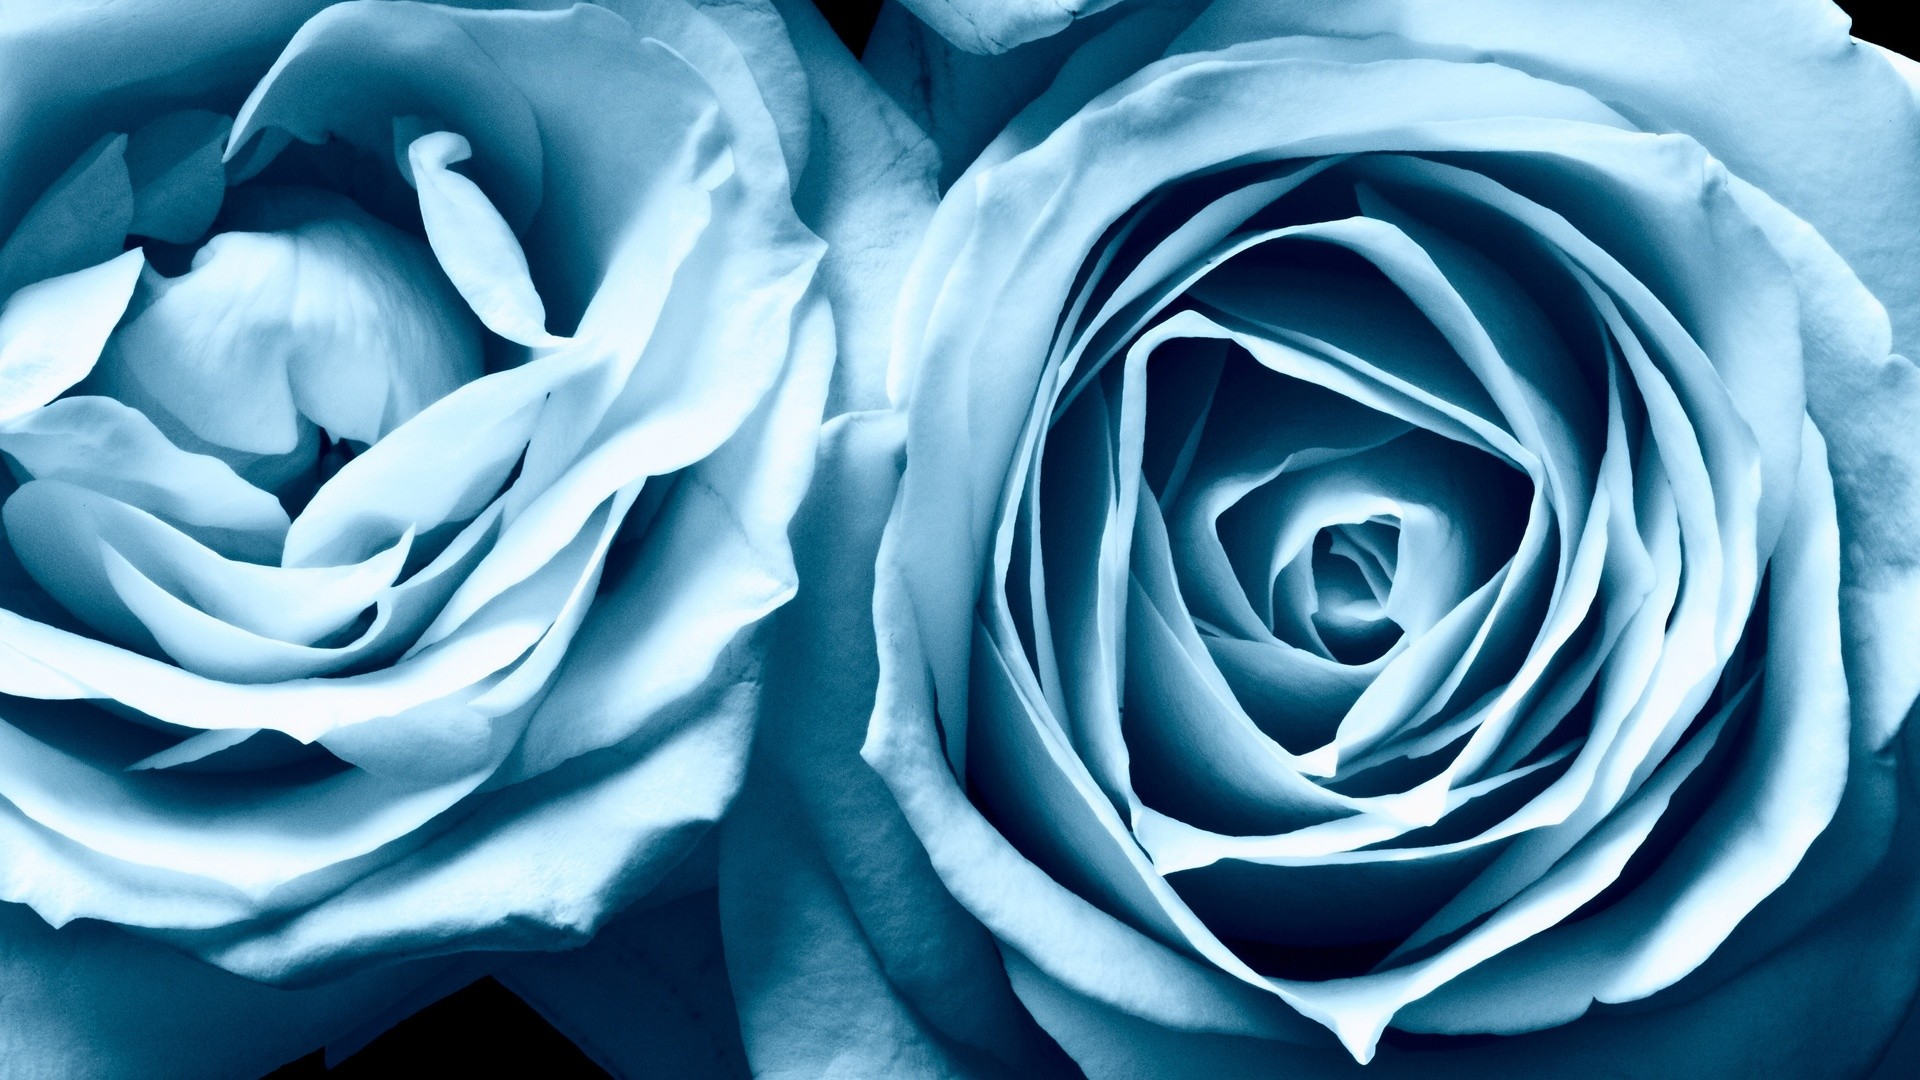 Flowers Wallpapers : Blue Roses Widescreen #1060 pixel .